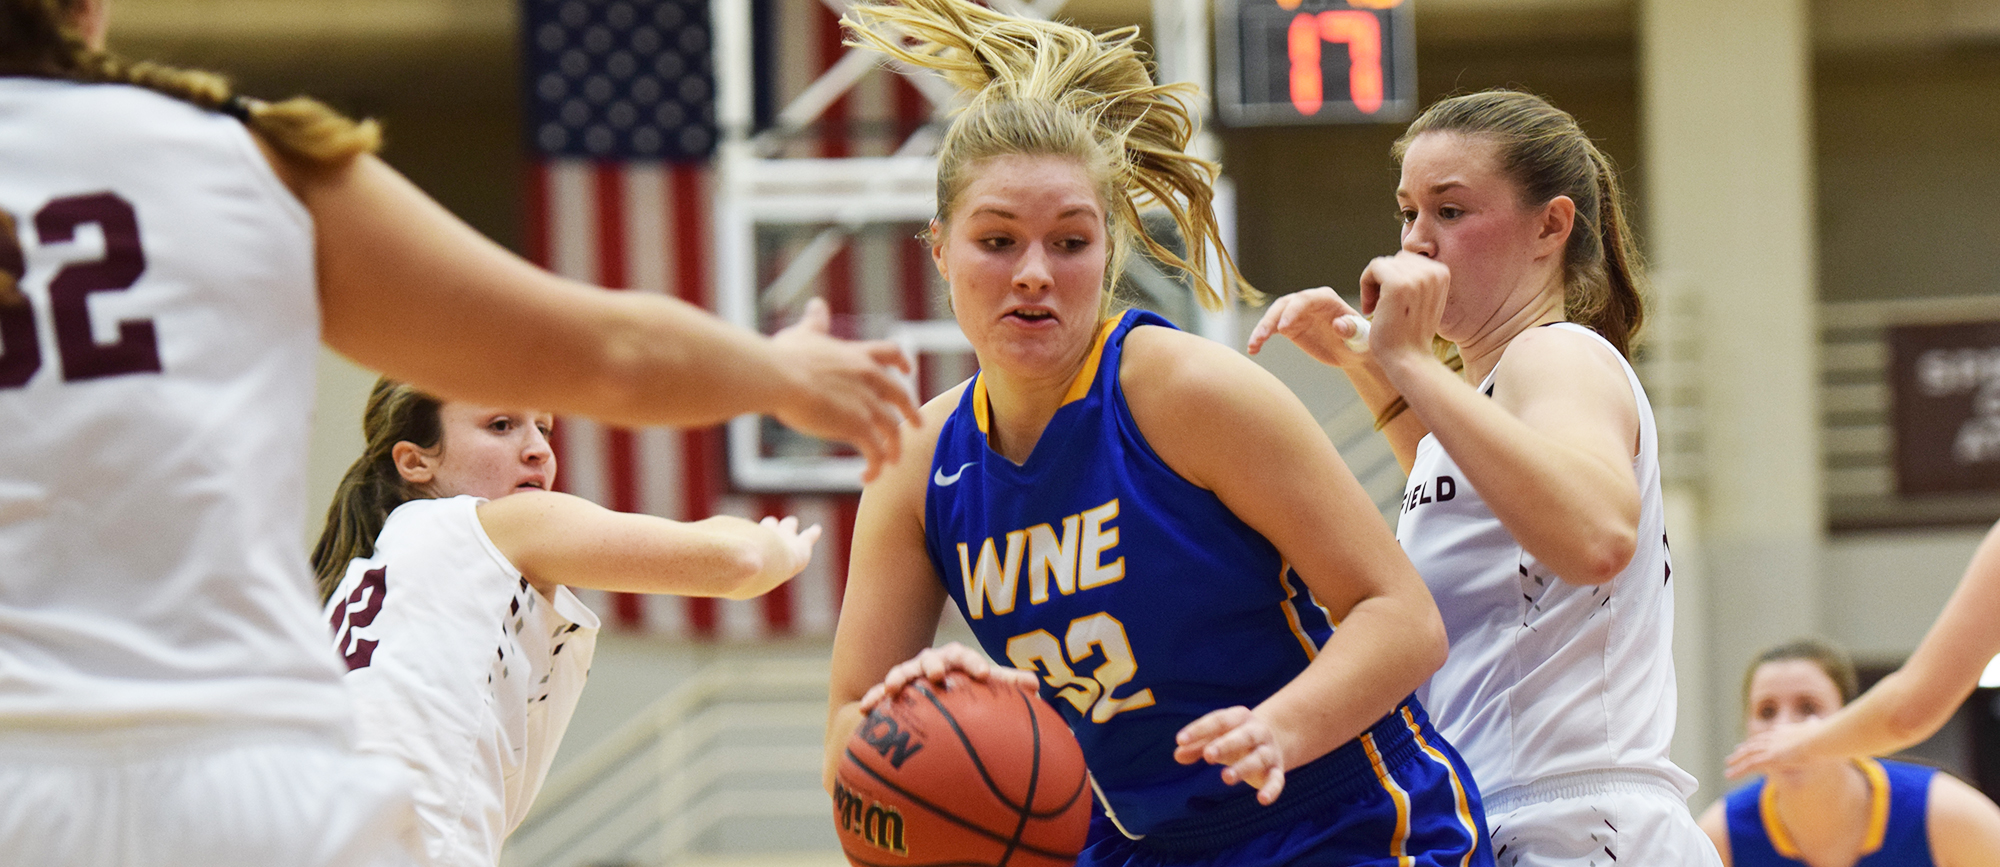 Sophomore Courtney Carlson recorded 13 points, seven rebounds, two assists and one block in Western New England's overtime loss at Roger Williams on Wednesday. (Photo by Rachael Margossian)